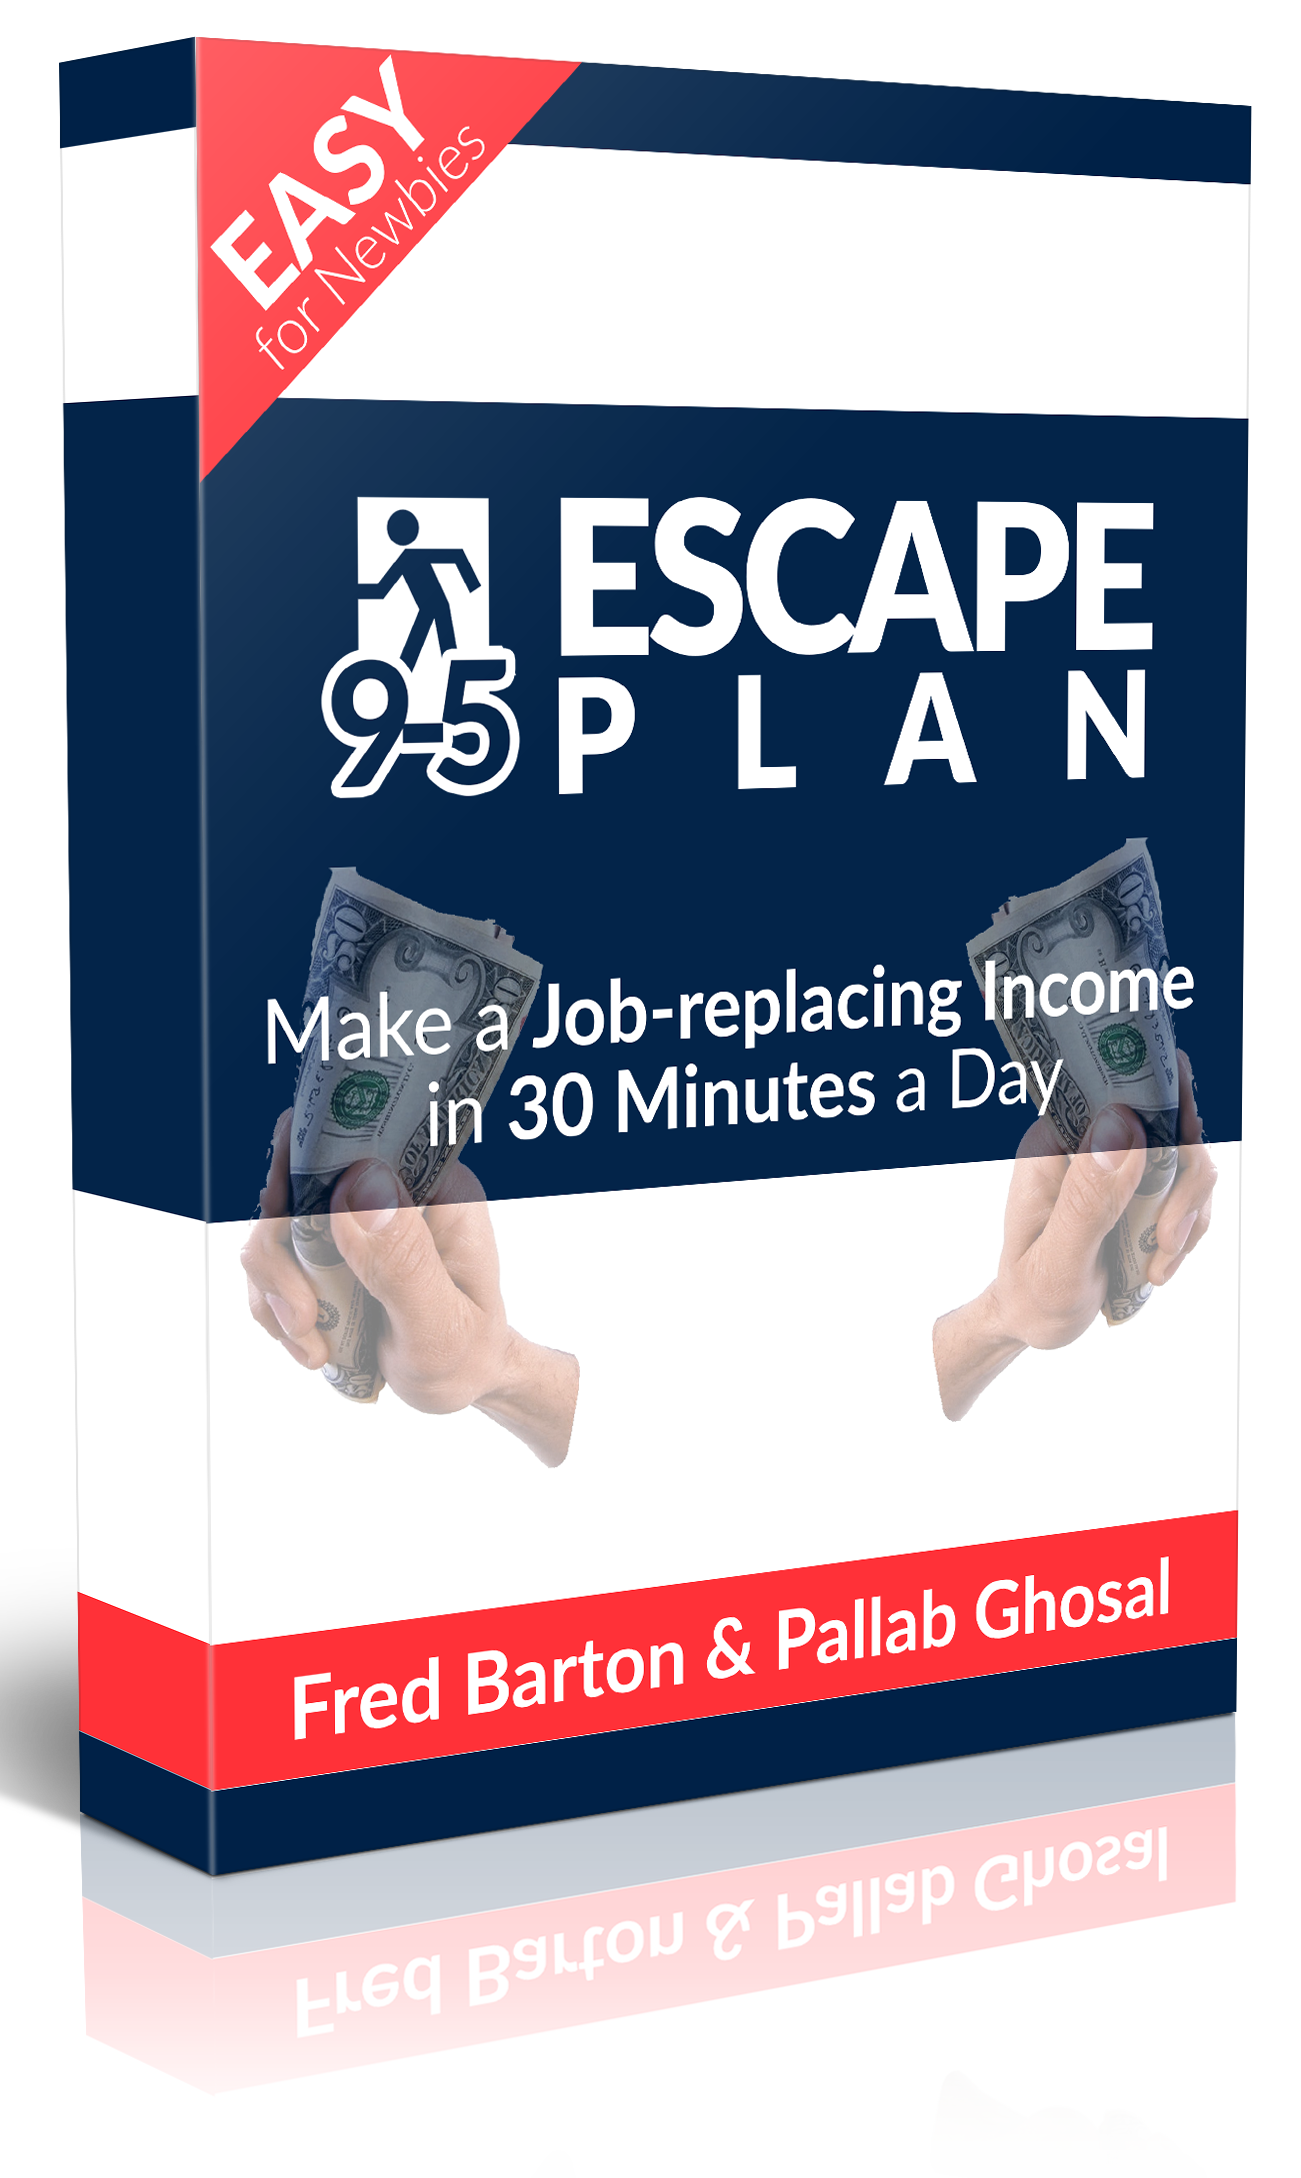 9-5 Escape Plan